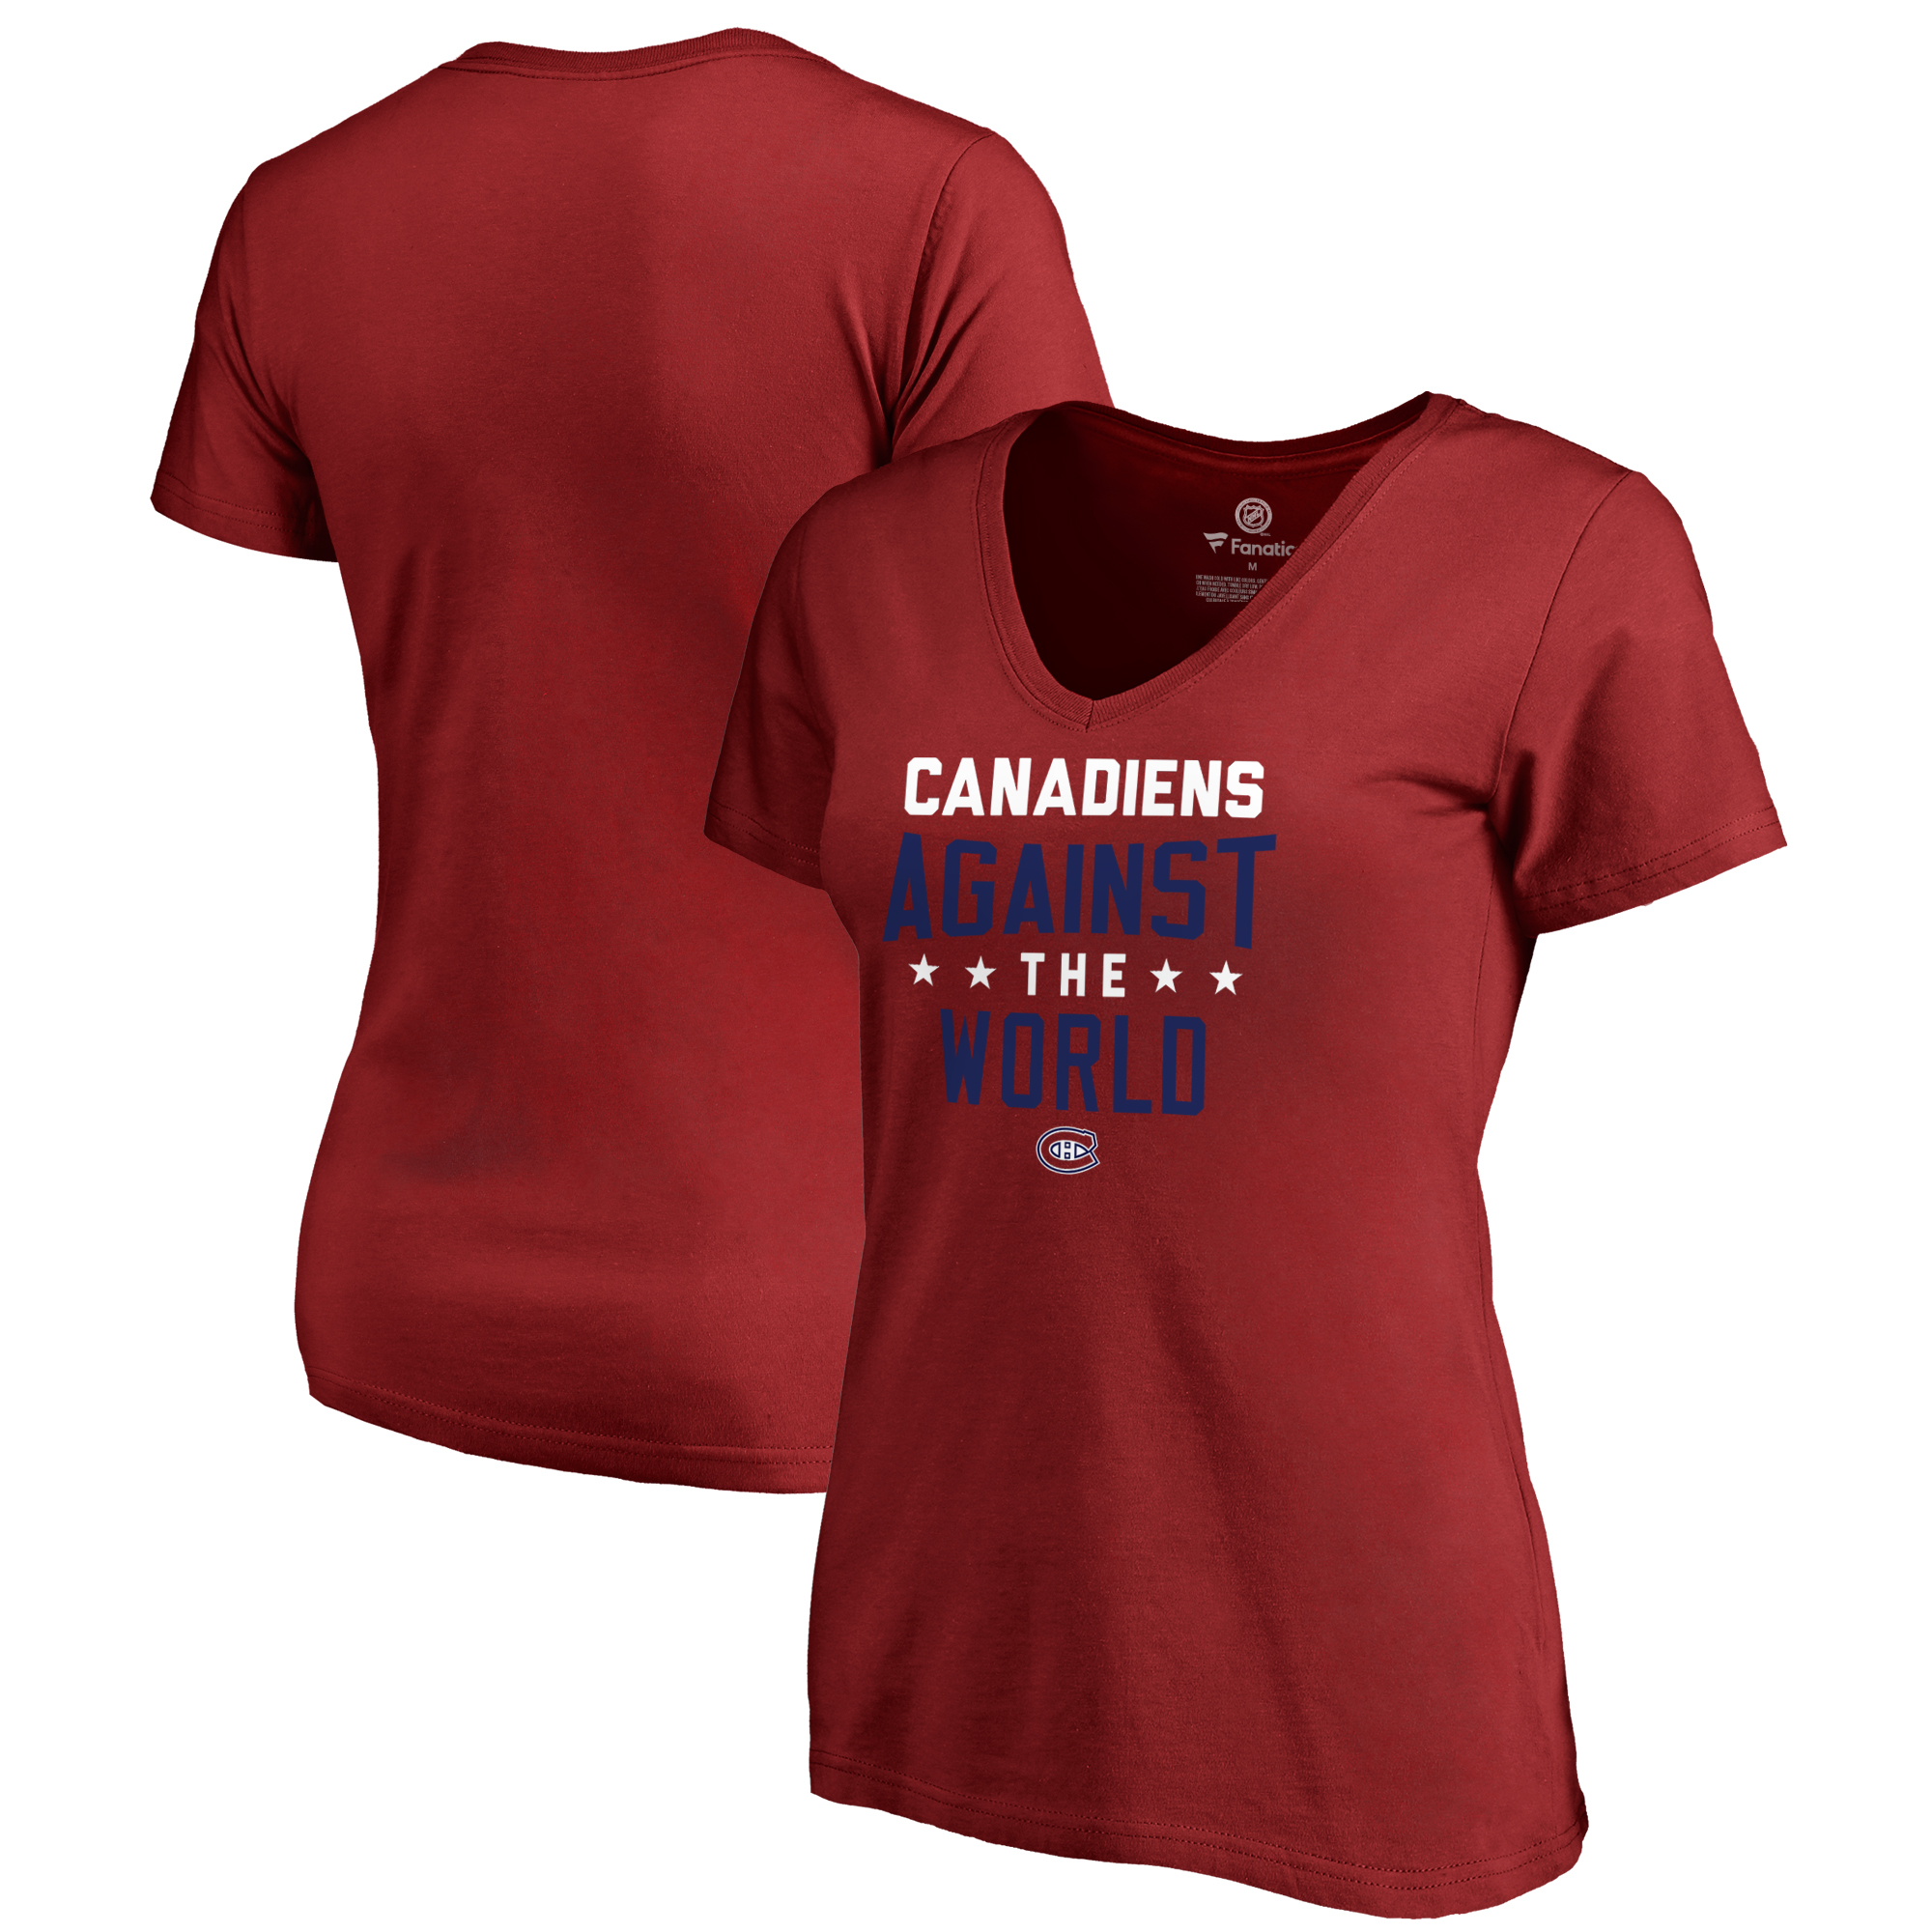 Montreal Canadiens Fanatics Branded Women's Against The World V-Neck T-Shirt - Red